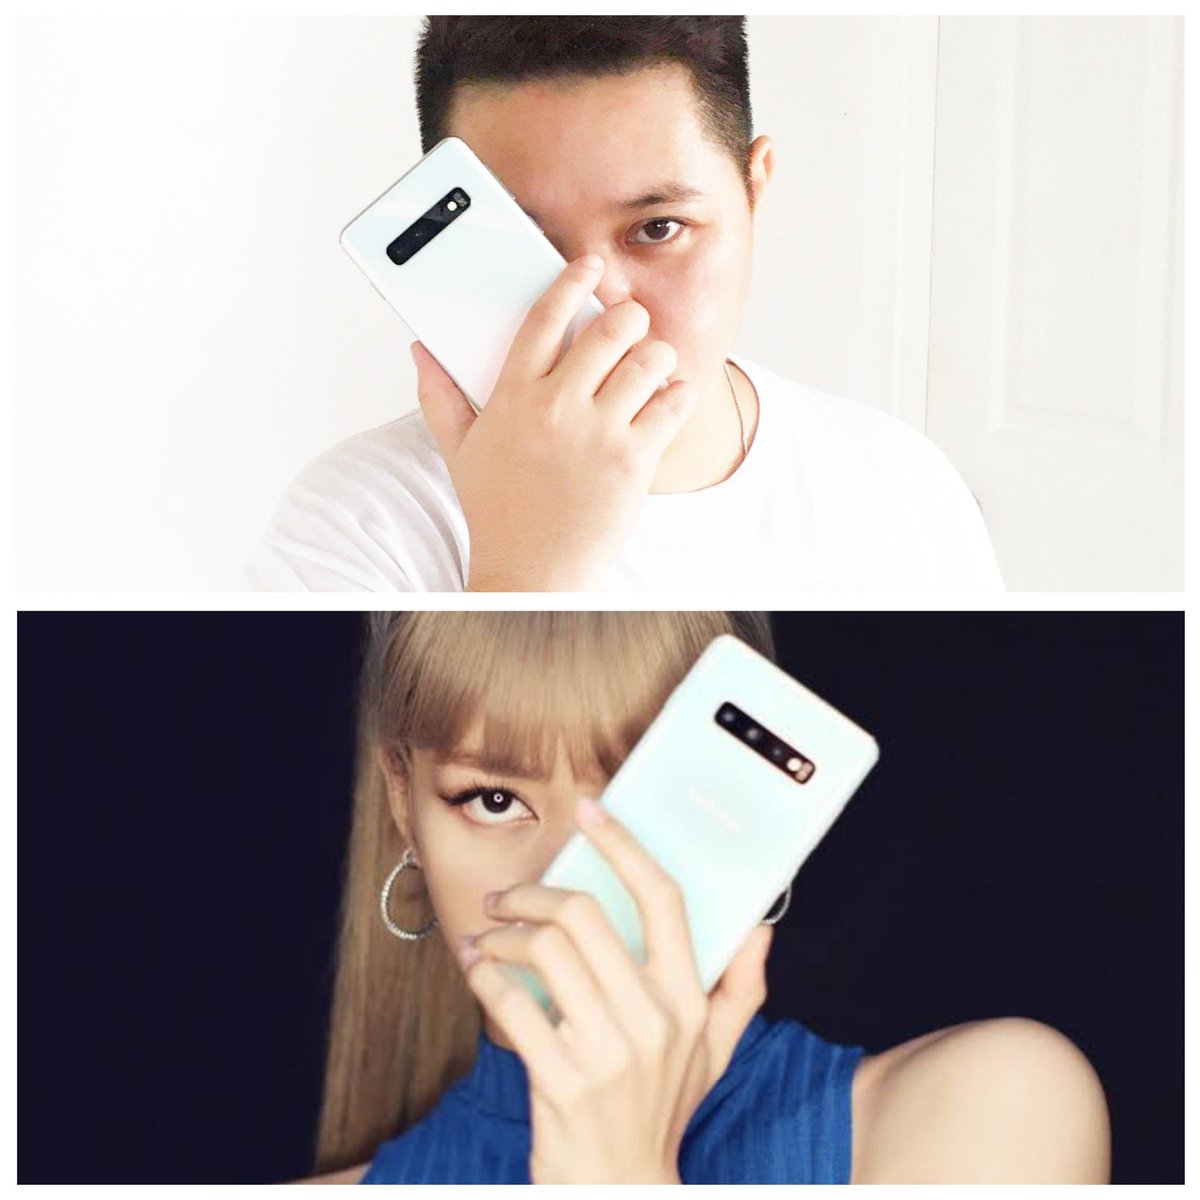 Coz i can't have my #LISA on my birthday or ever.. hahaha so I just bought myself what my #LISA is promoting.. HAPPY BIRTHDAY TO ME...#LISA #BLACKPINK #BLINK @ygofficialblink #Samsung #galaxys10series pic.twitter.com/weLp39p8sf